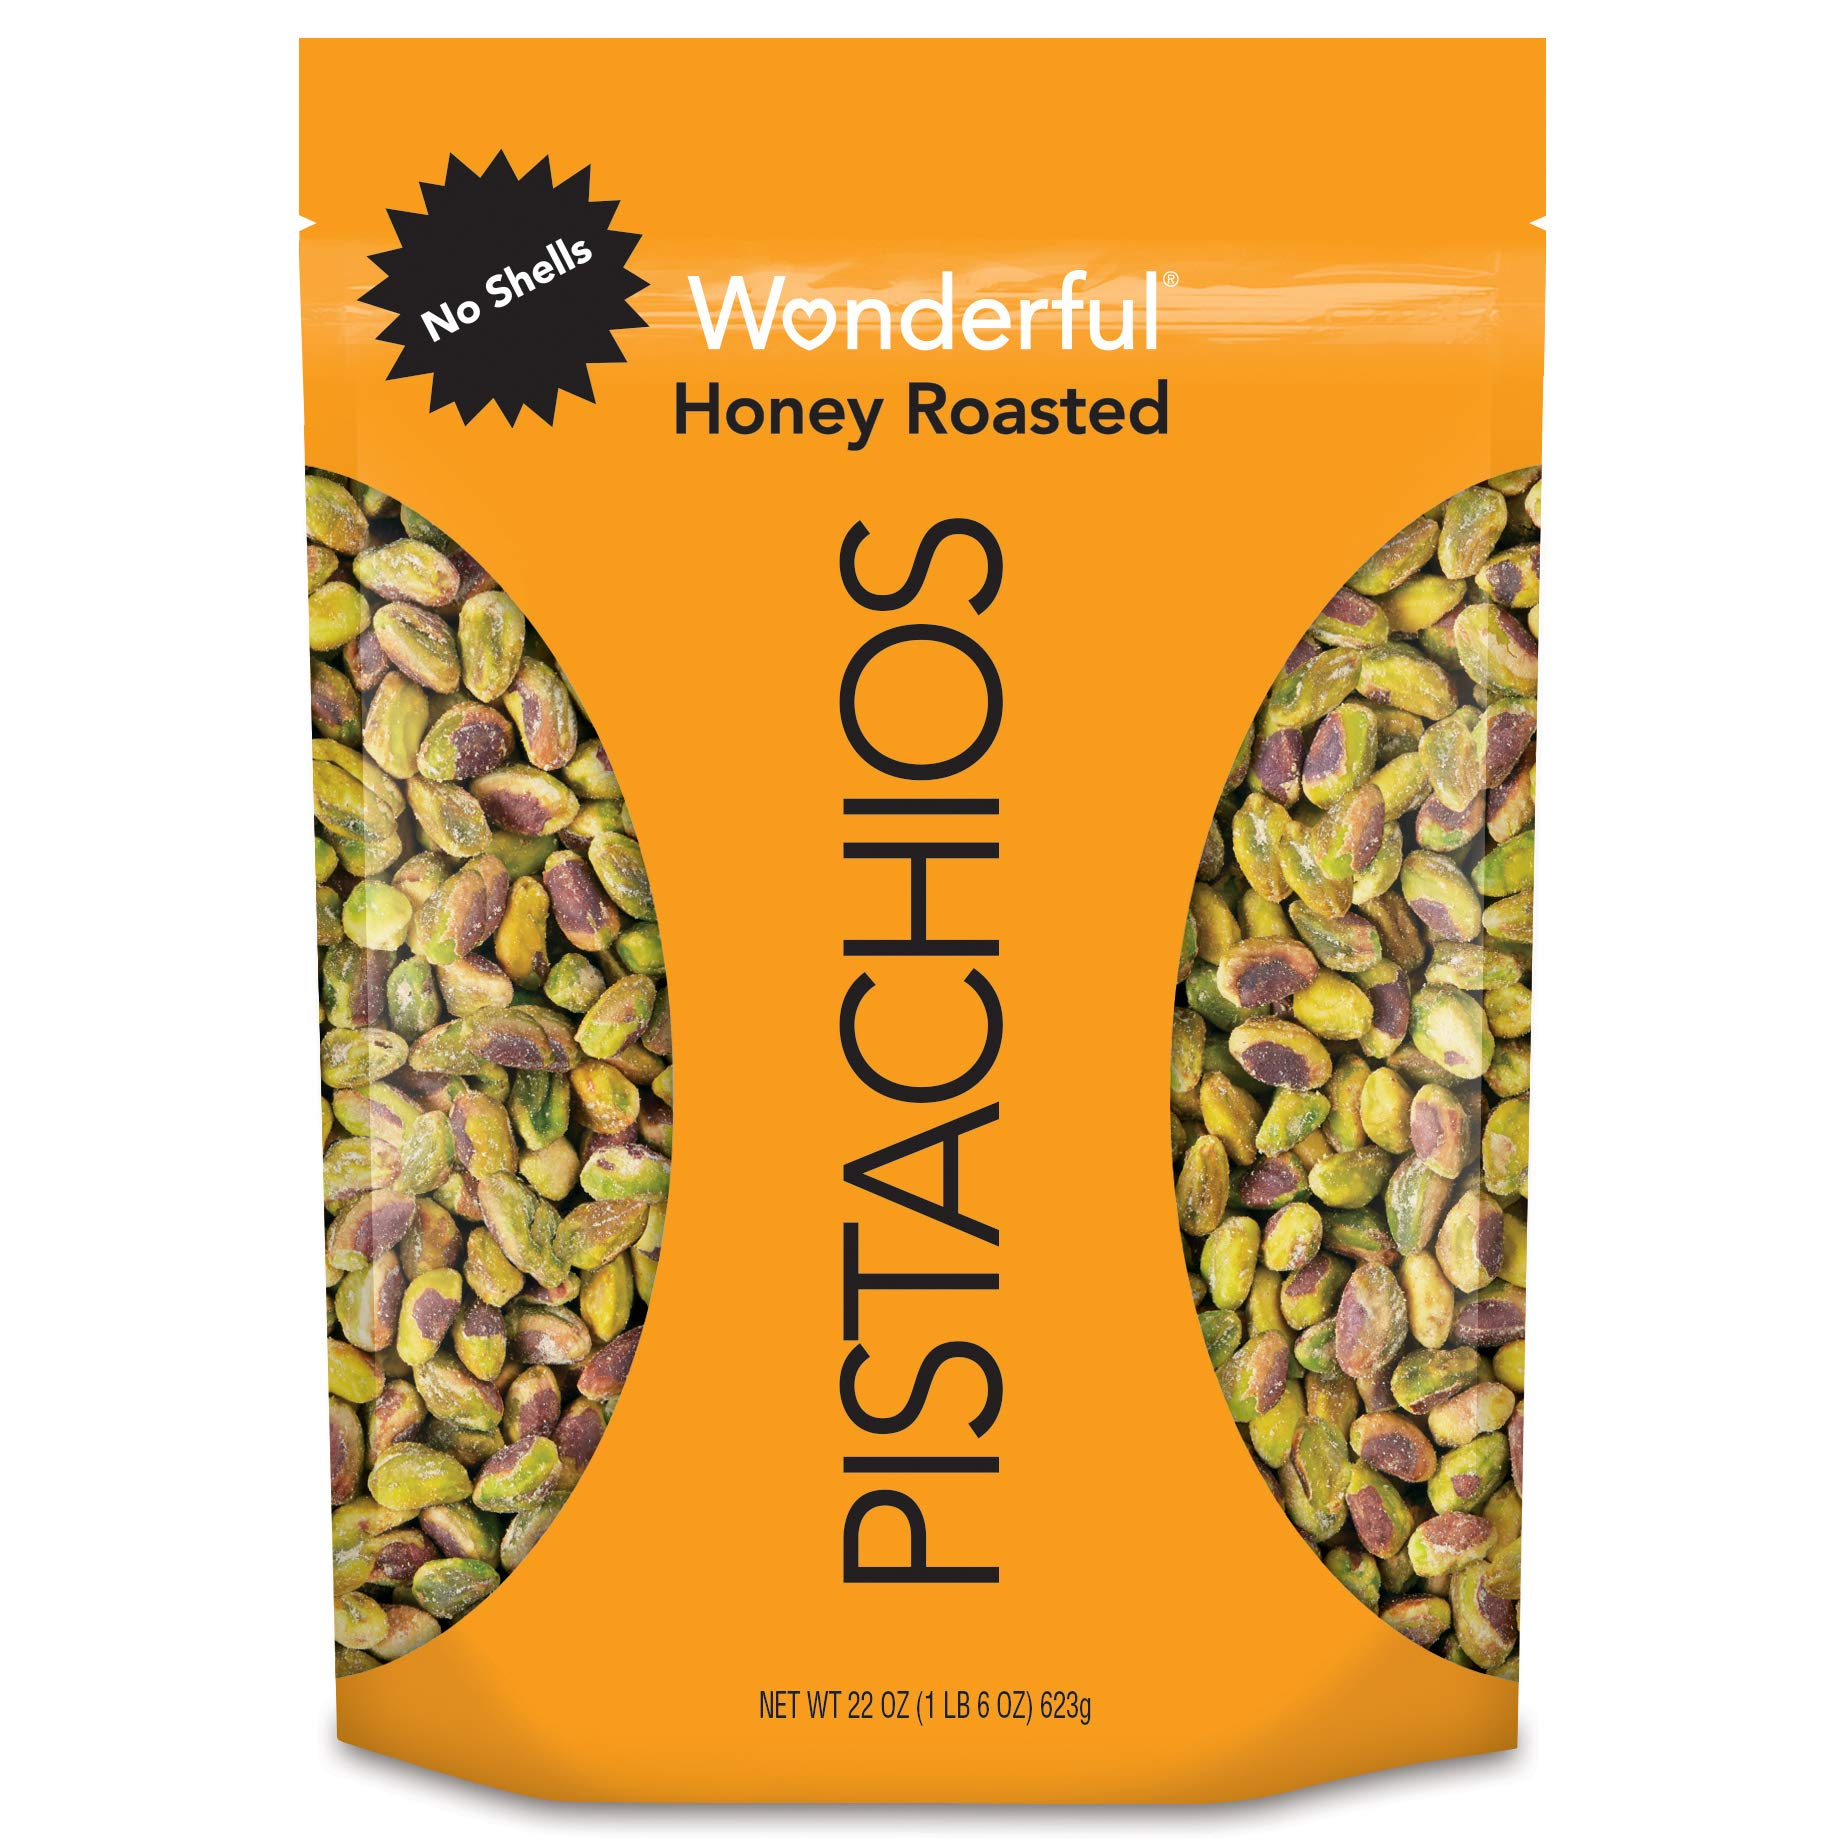 Wonderful Pistachios, No Shells, Honey Roasted, 22 Oz Resealable Pouch by Wonderful Pistachios & Almonds